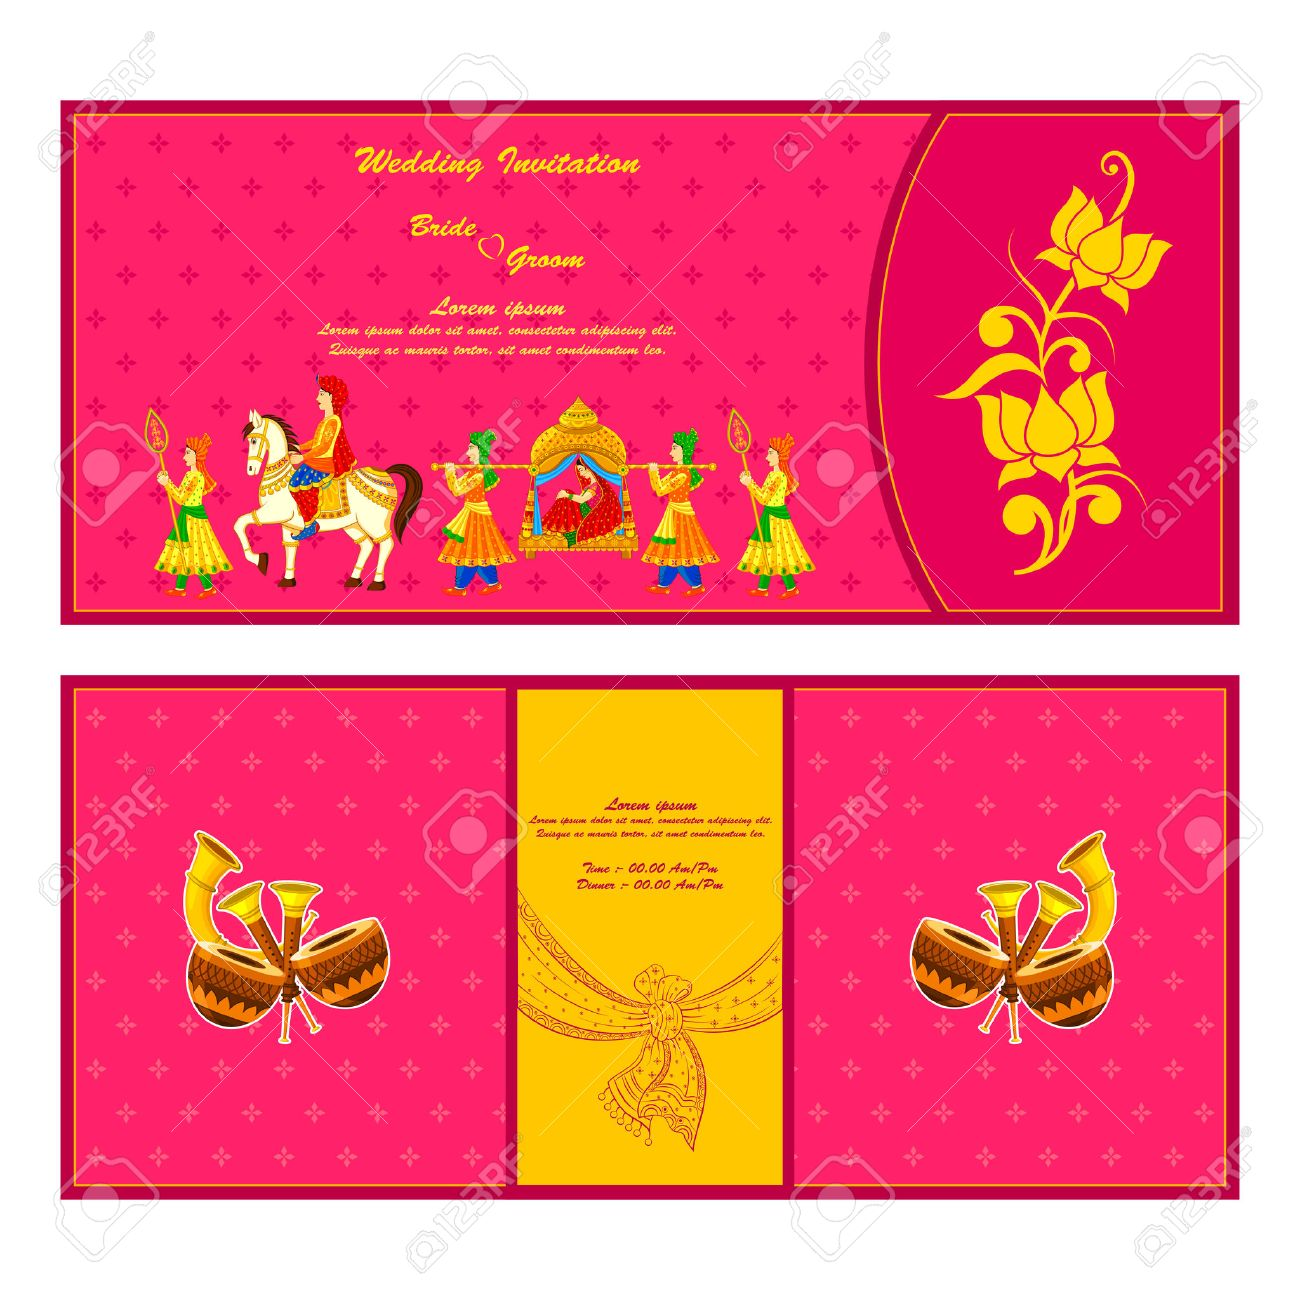 Vector Illustration Of Indian Wedding Invitation Card Royalty Free – Marriage Invitation Cards India